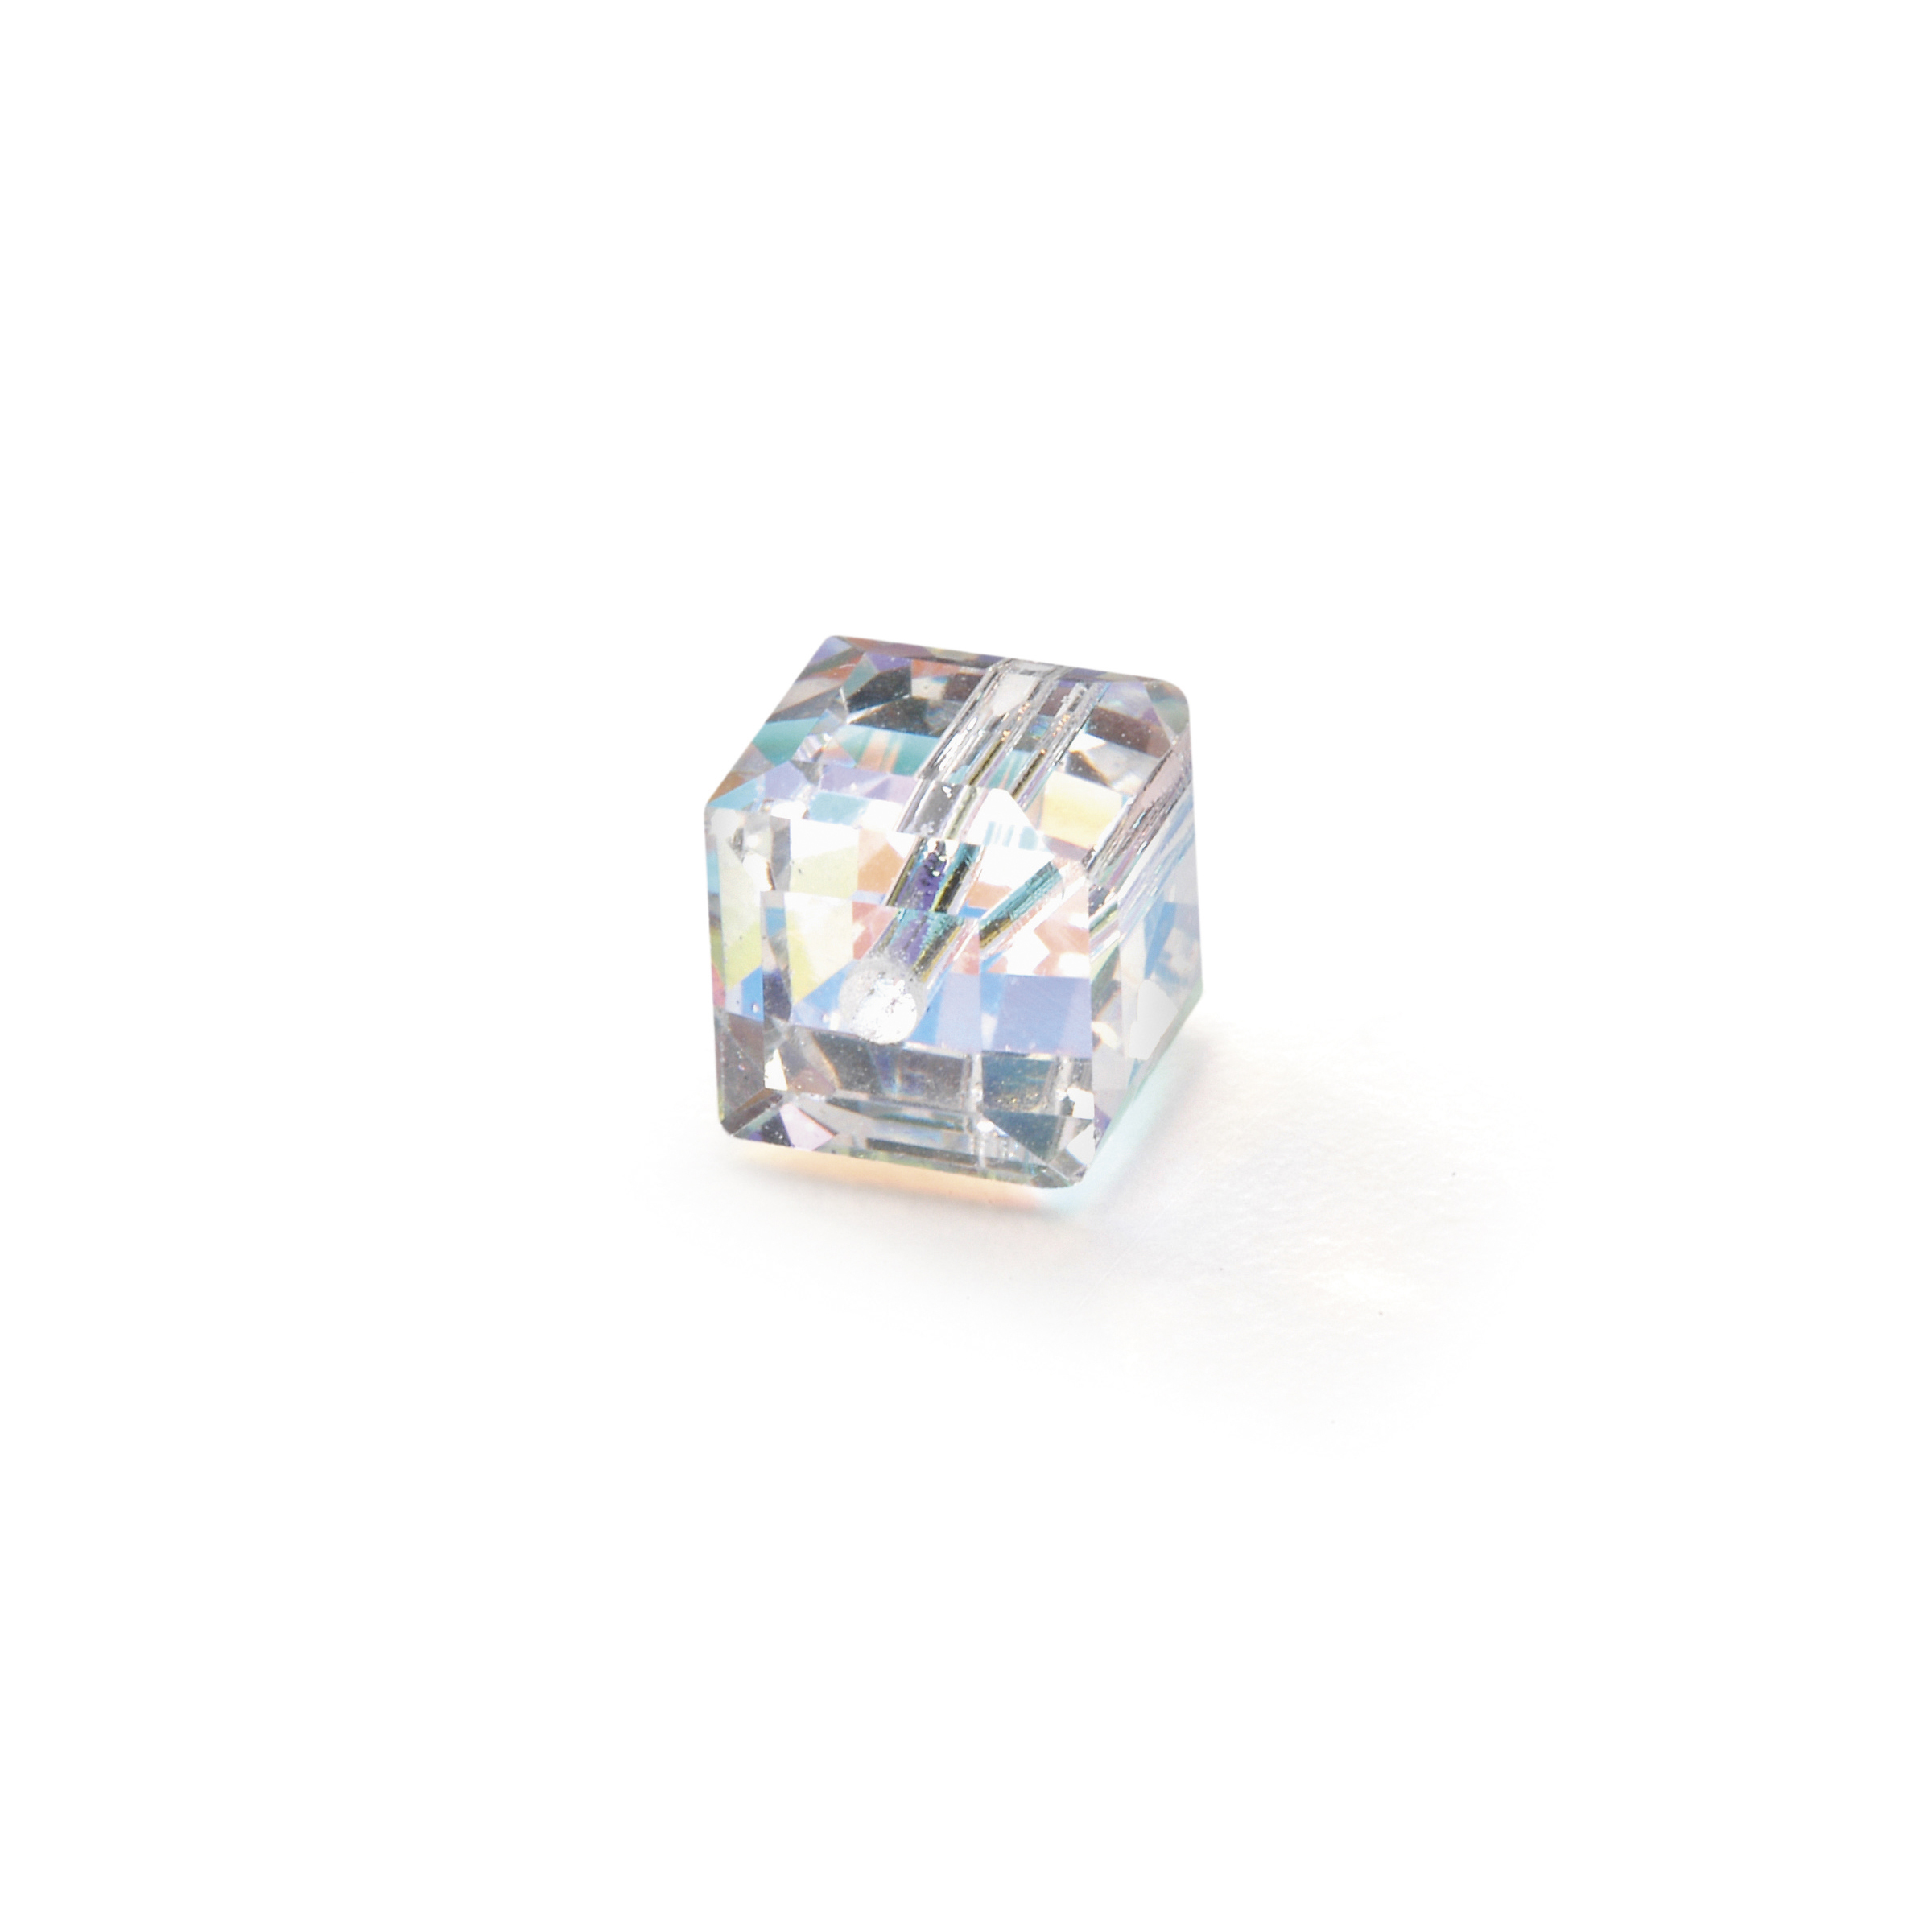 8mm Facet Cube Bead Crystal